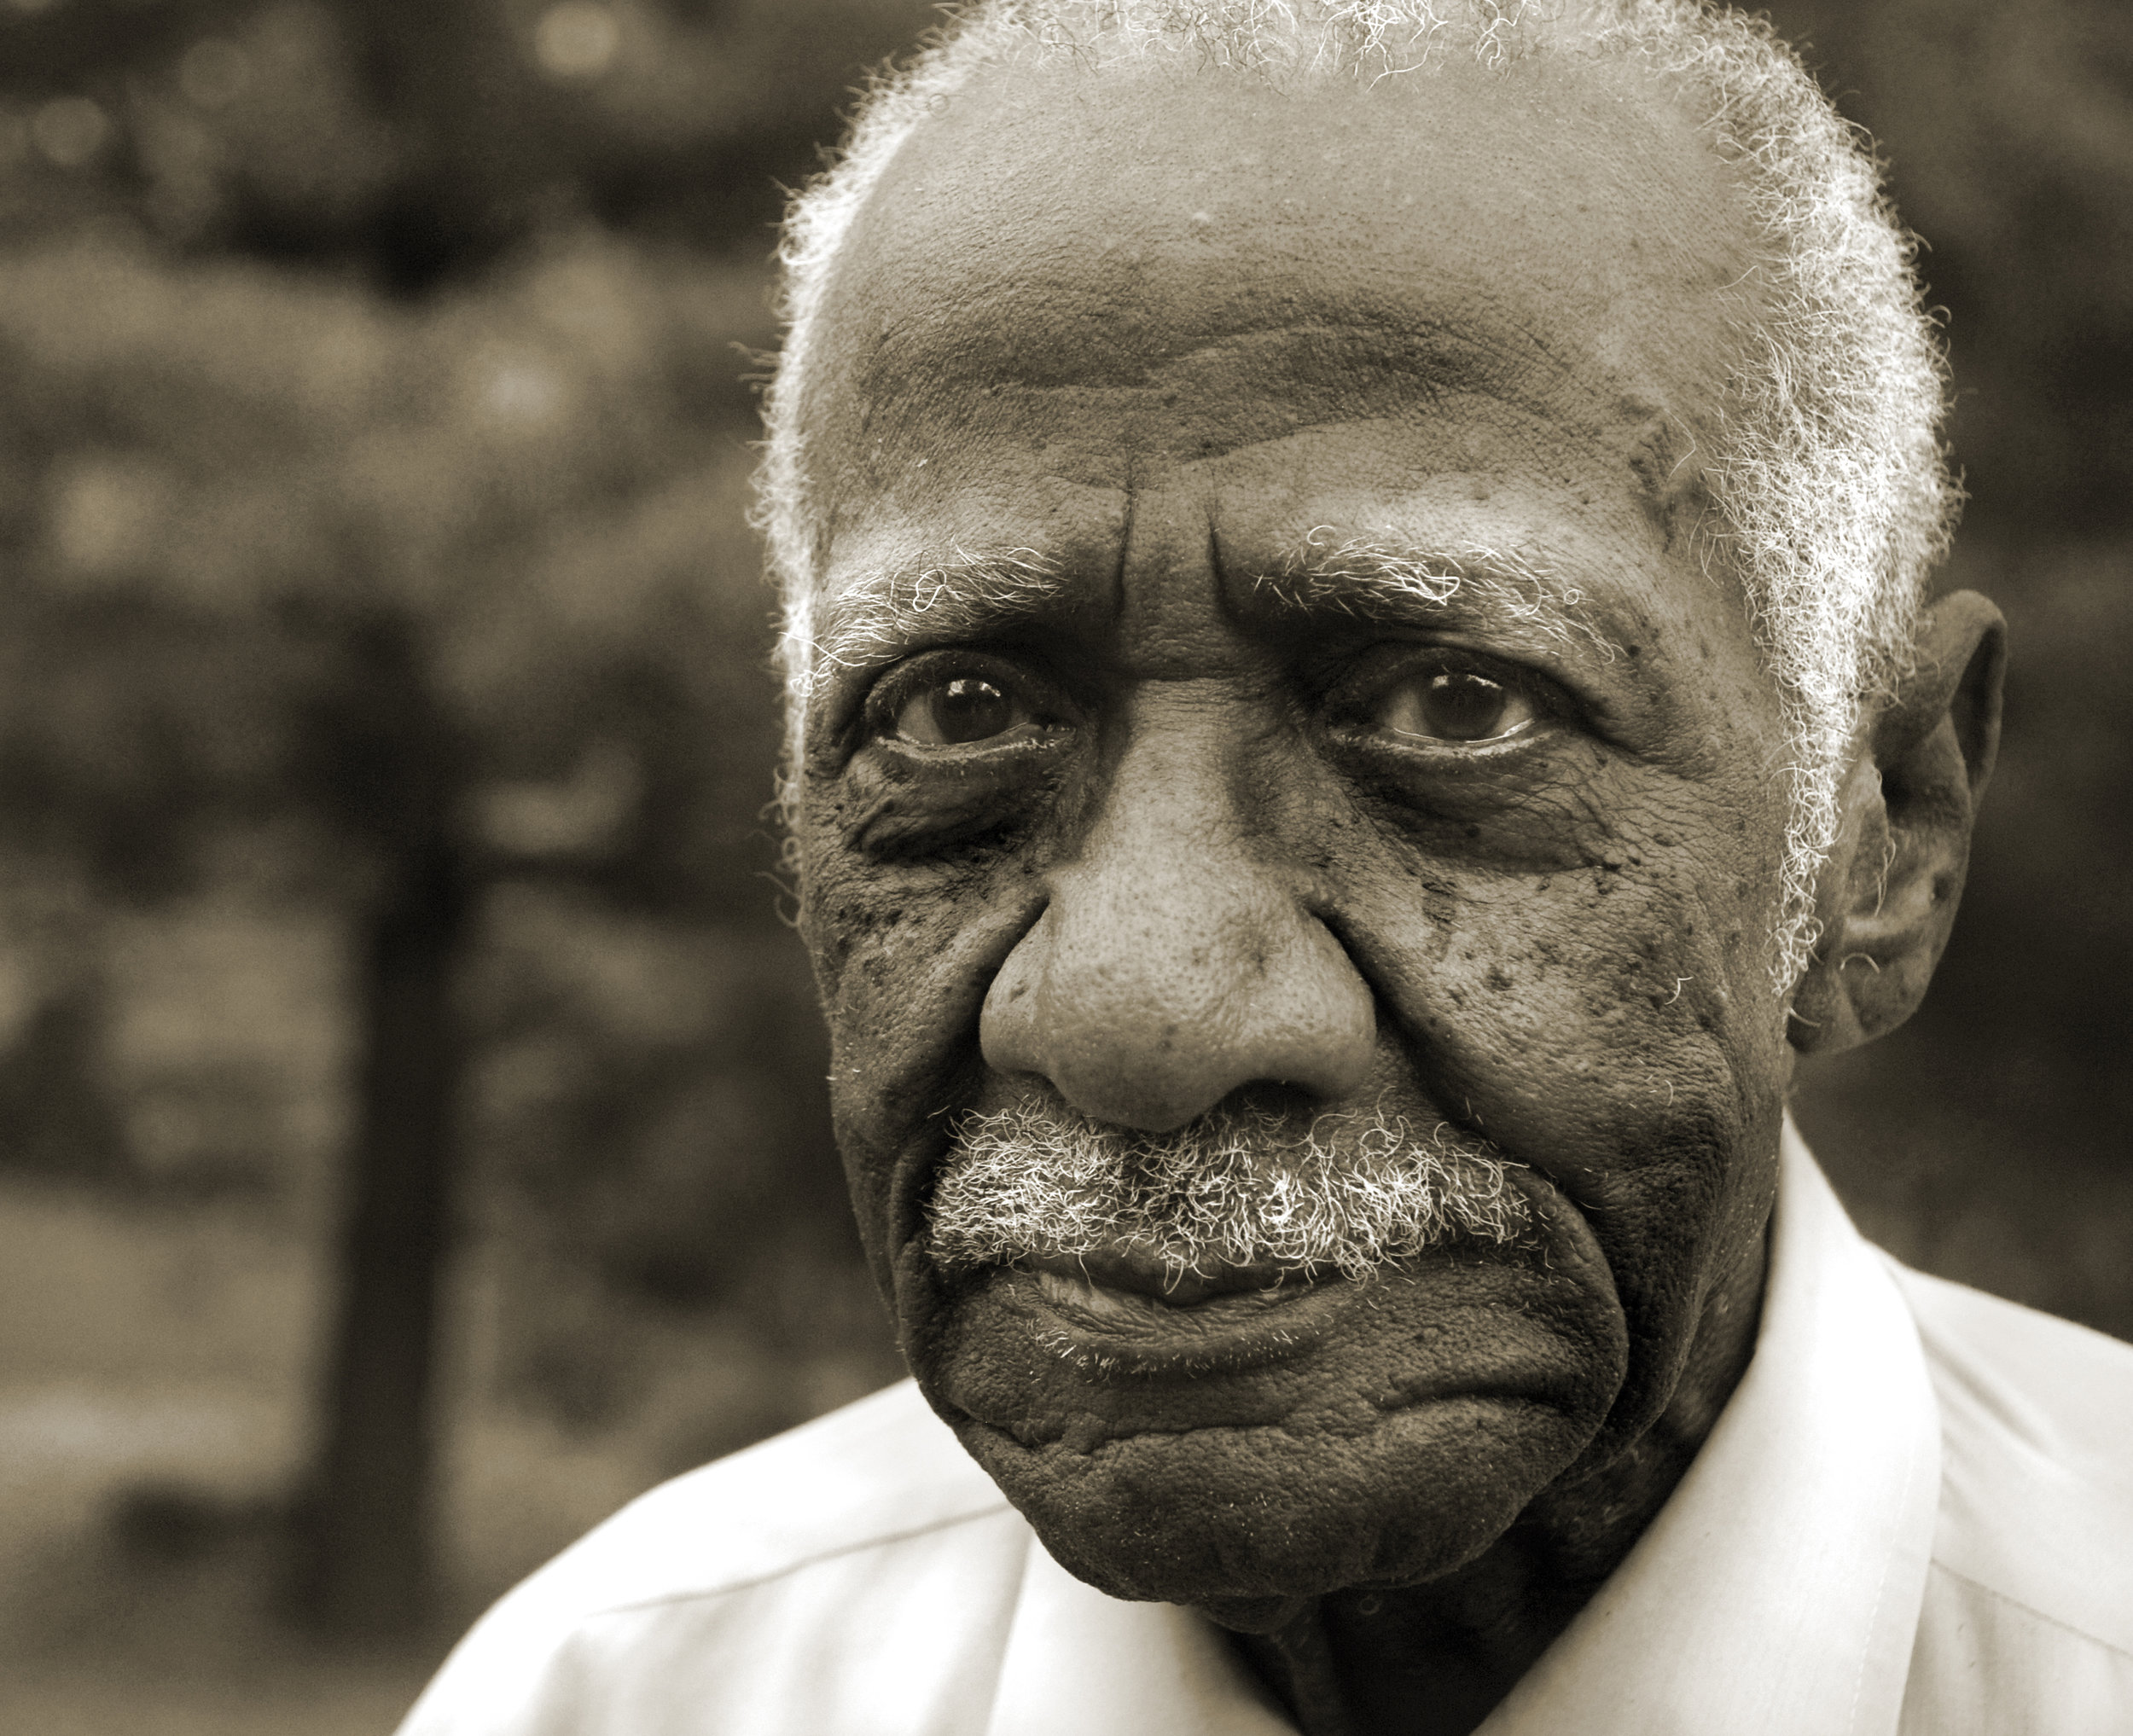 """Broomsy Salter (pictured at 94 years old) became the first African-American in Freeport, Illinois to move across the """"color line"""" in 1956, when he bought land from a Jewish man and built a house. Until 1966, African-Americans were restricted to buying, renting, and leasing east of Illinois 26. The east side of Freeport has a flood plain."""